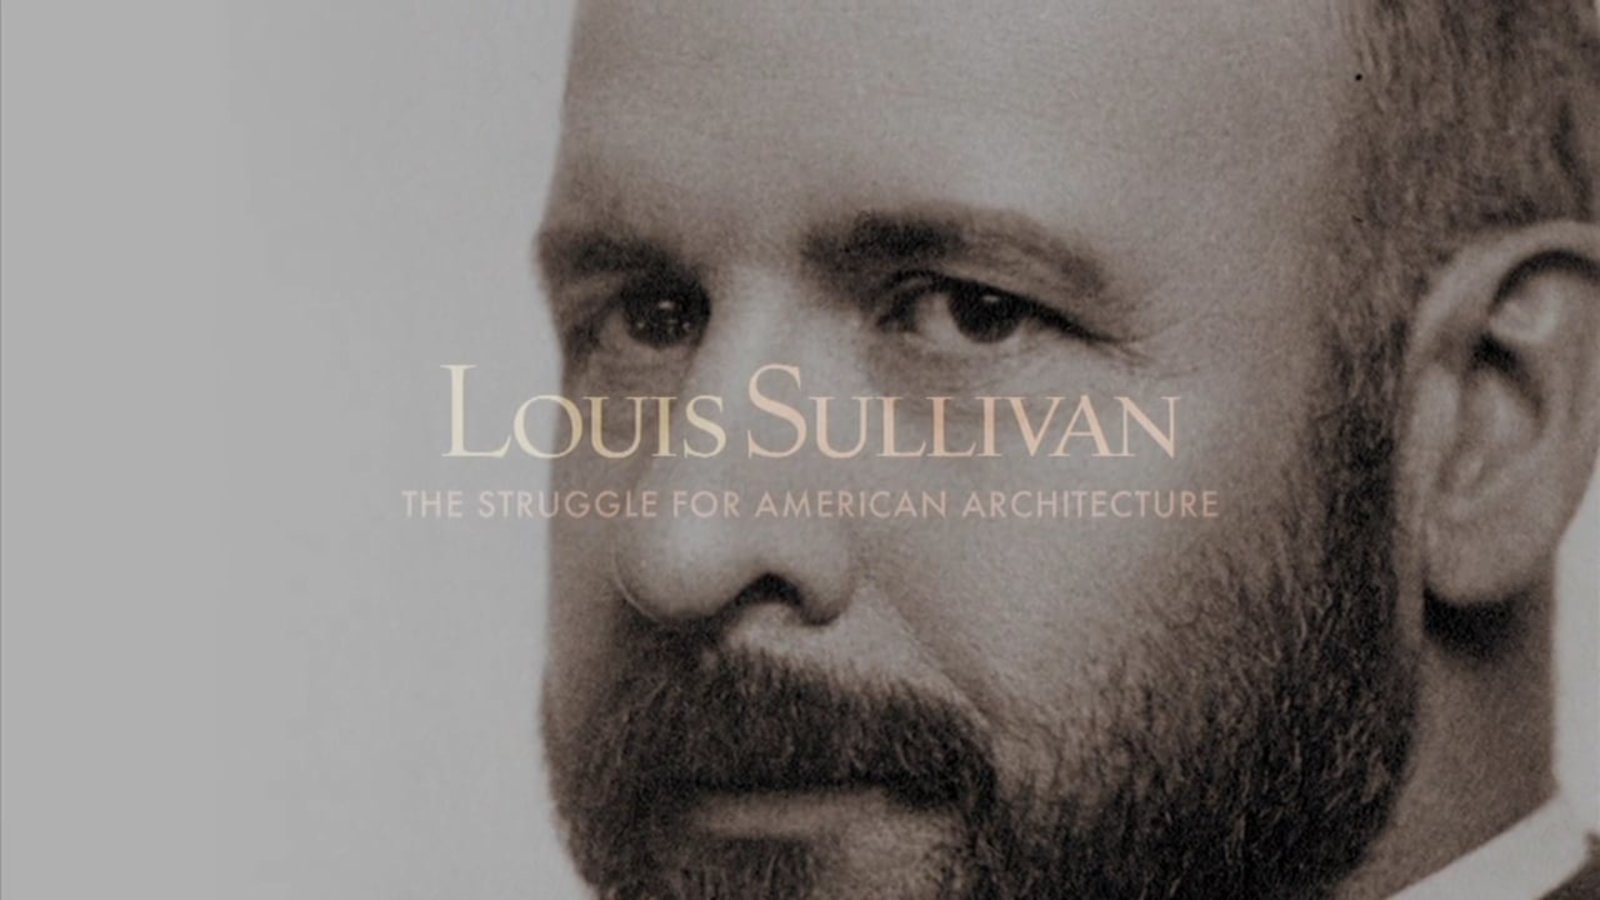 Louis Sullivan - The Struggle for American Architecture